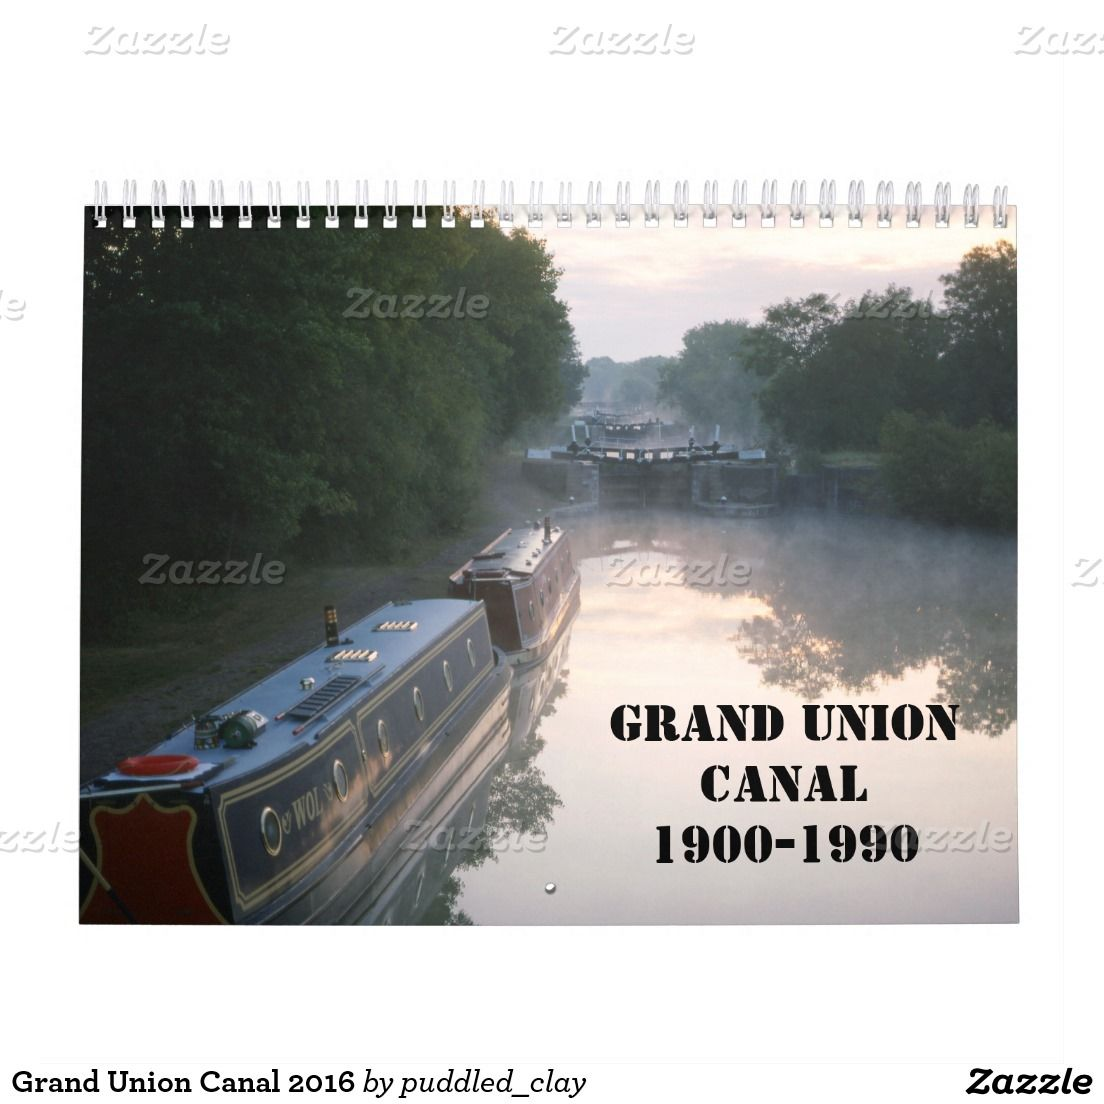 Grand Union Canal 2016 Calendar #narrowboats #canals